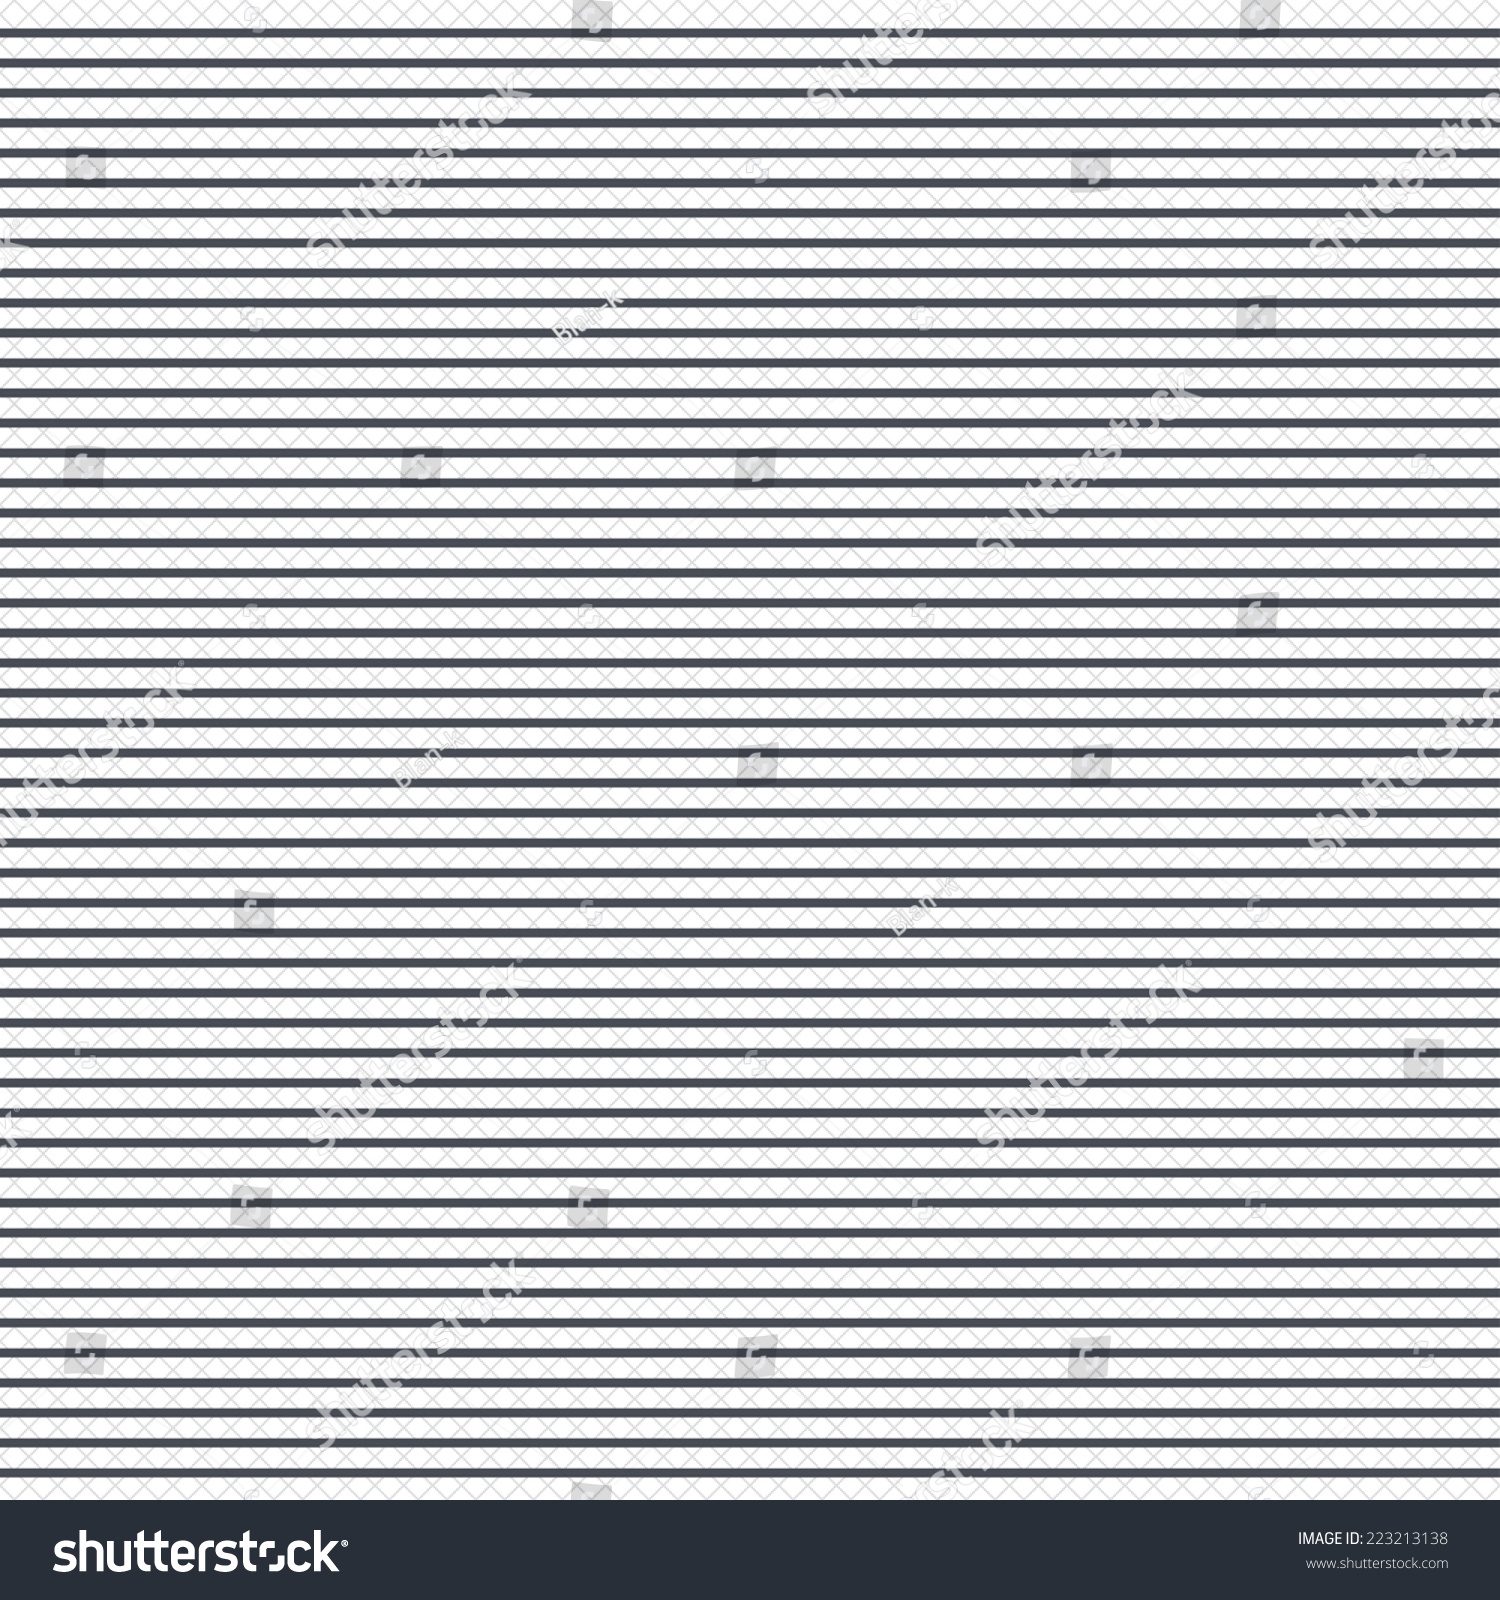 Line Texture Background : Horizontal lines pattern background abstract wallpaper